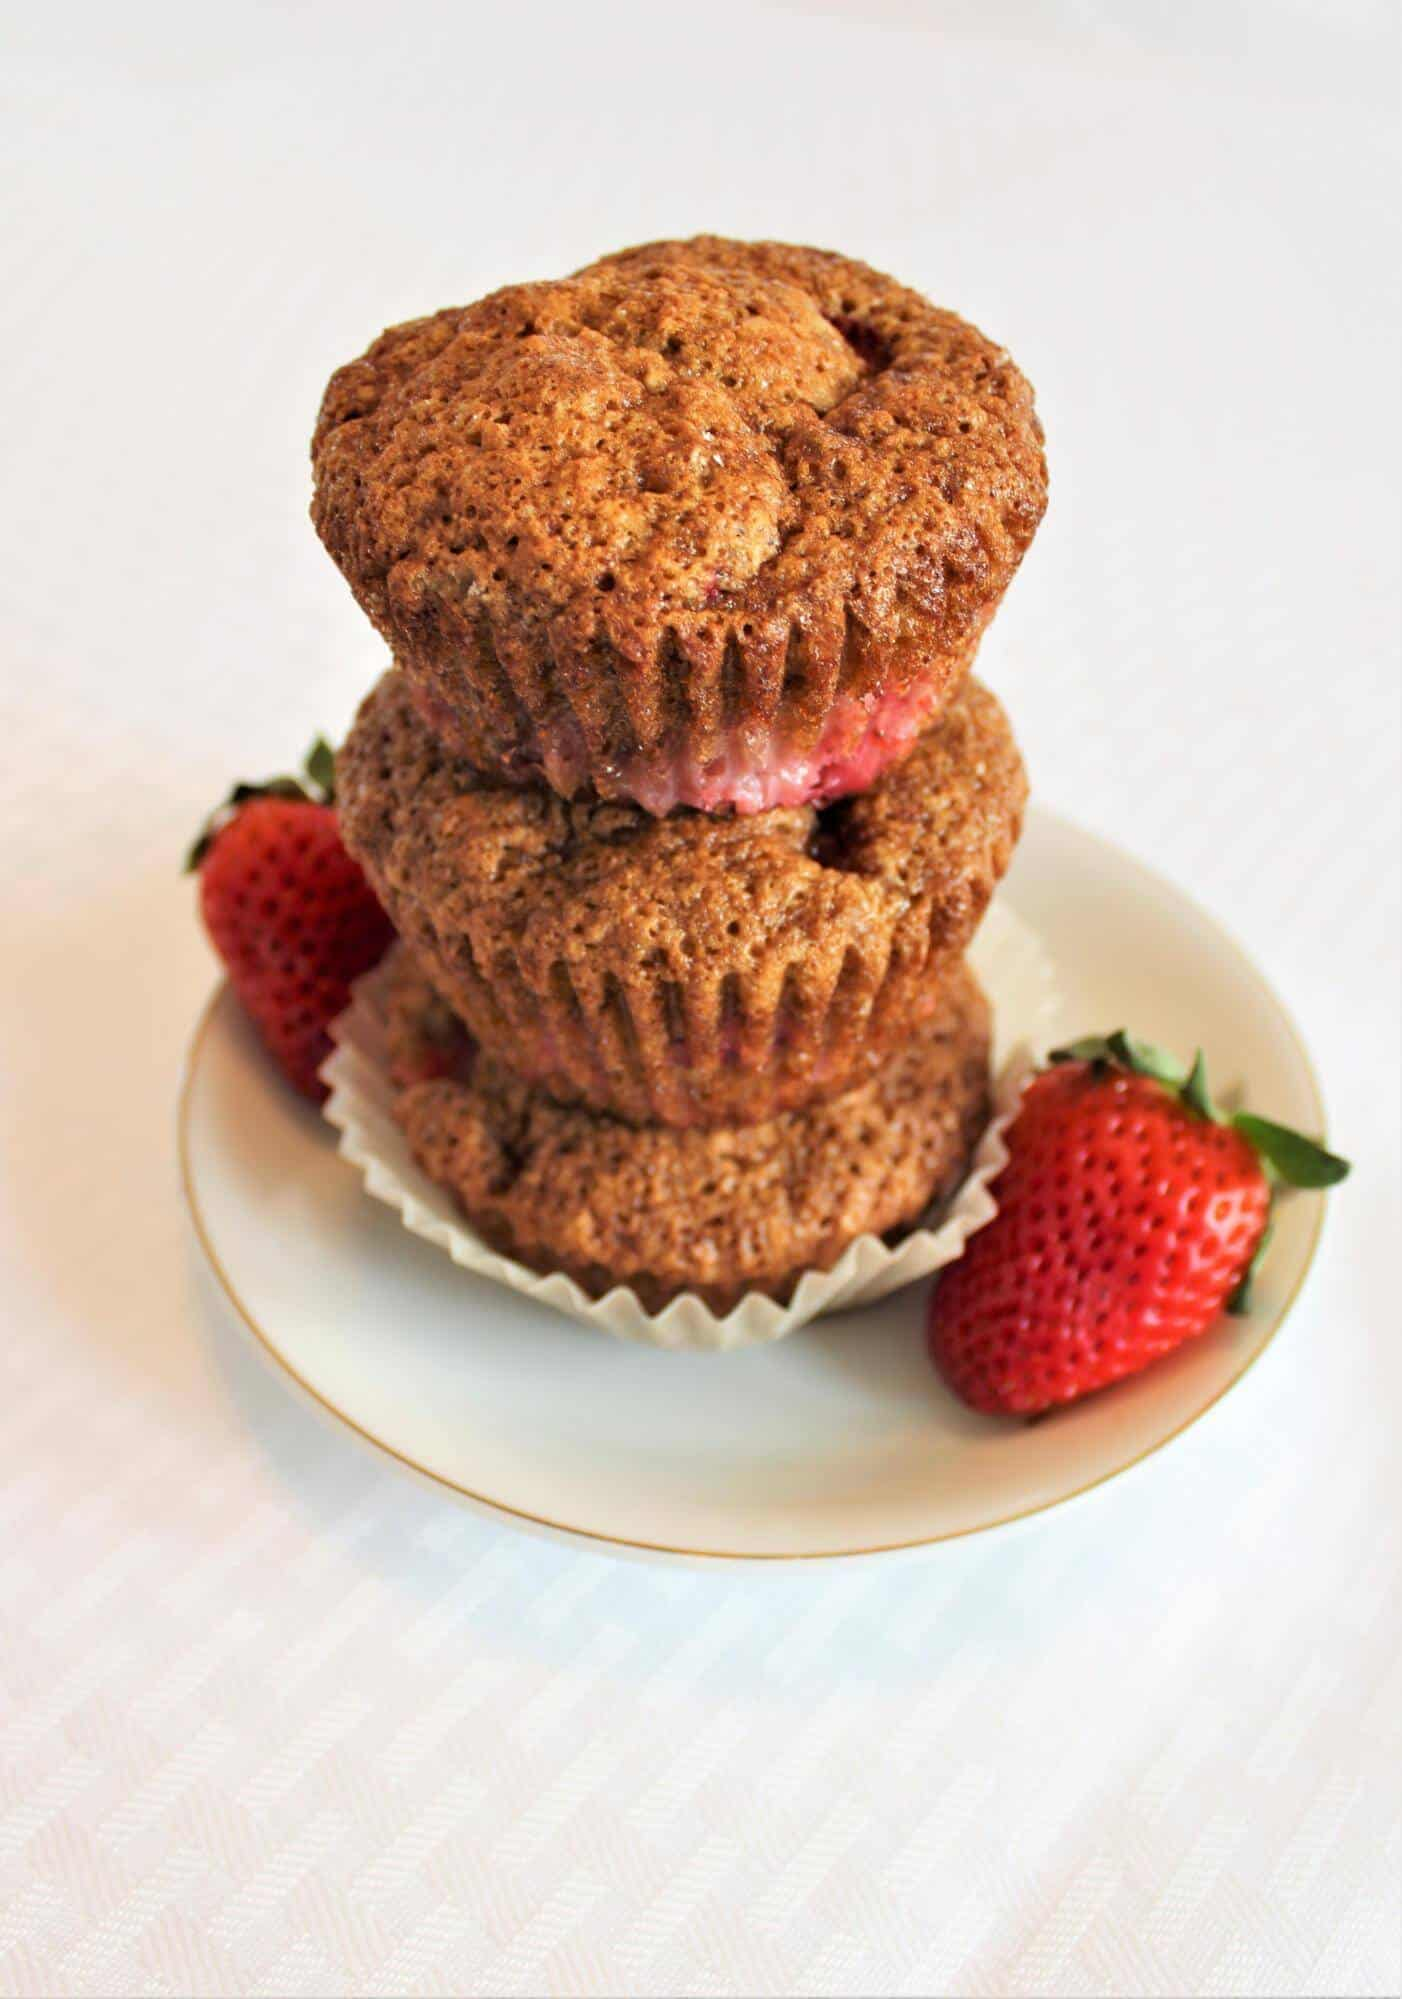 Three muffins and 2 strawberries on plate